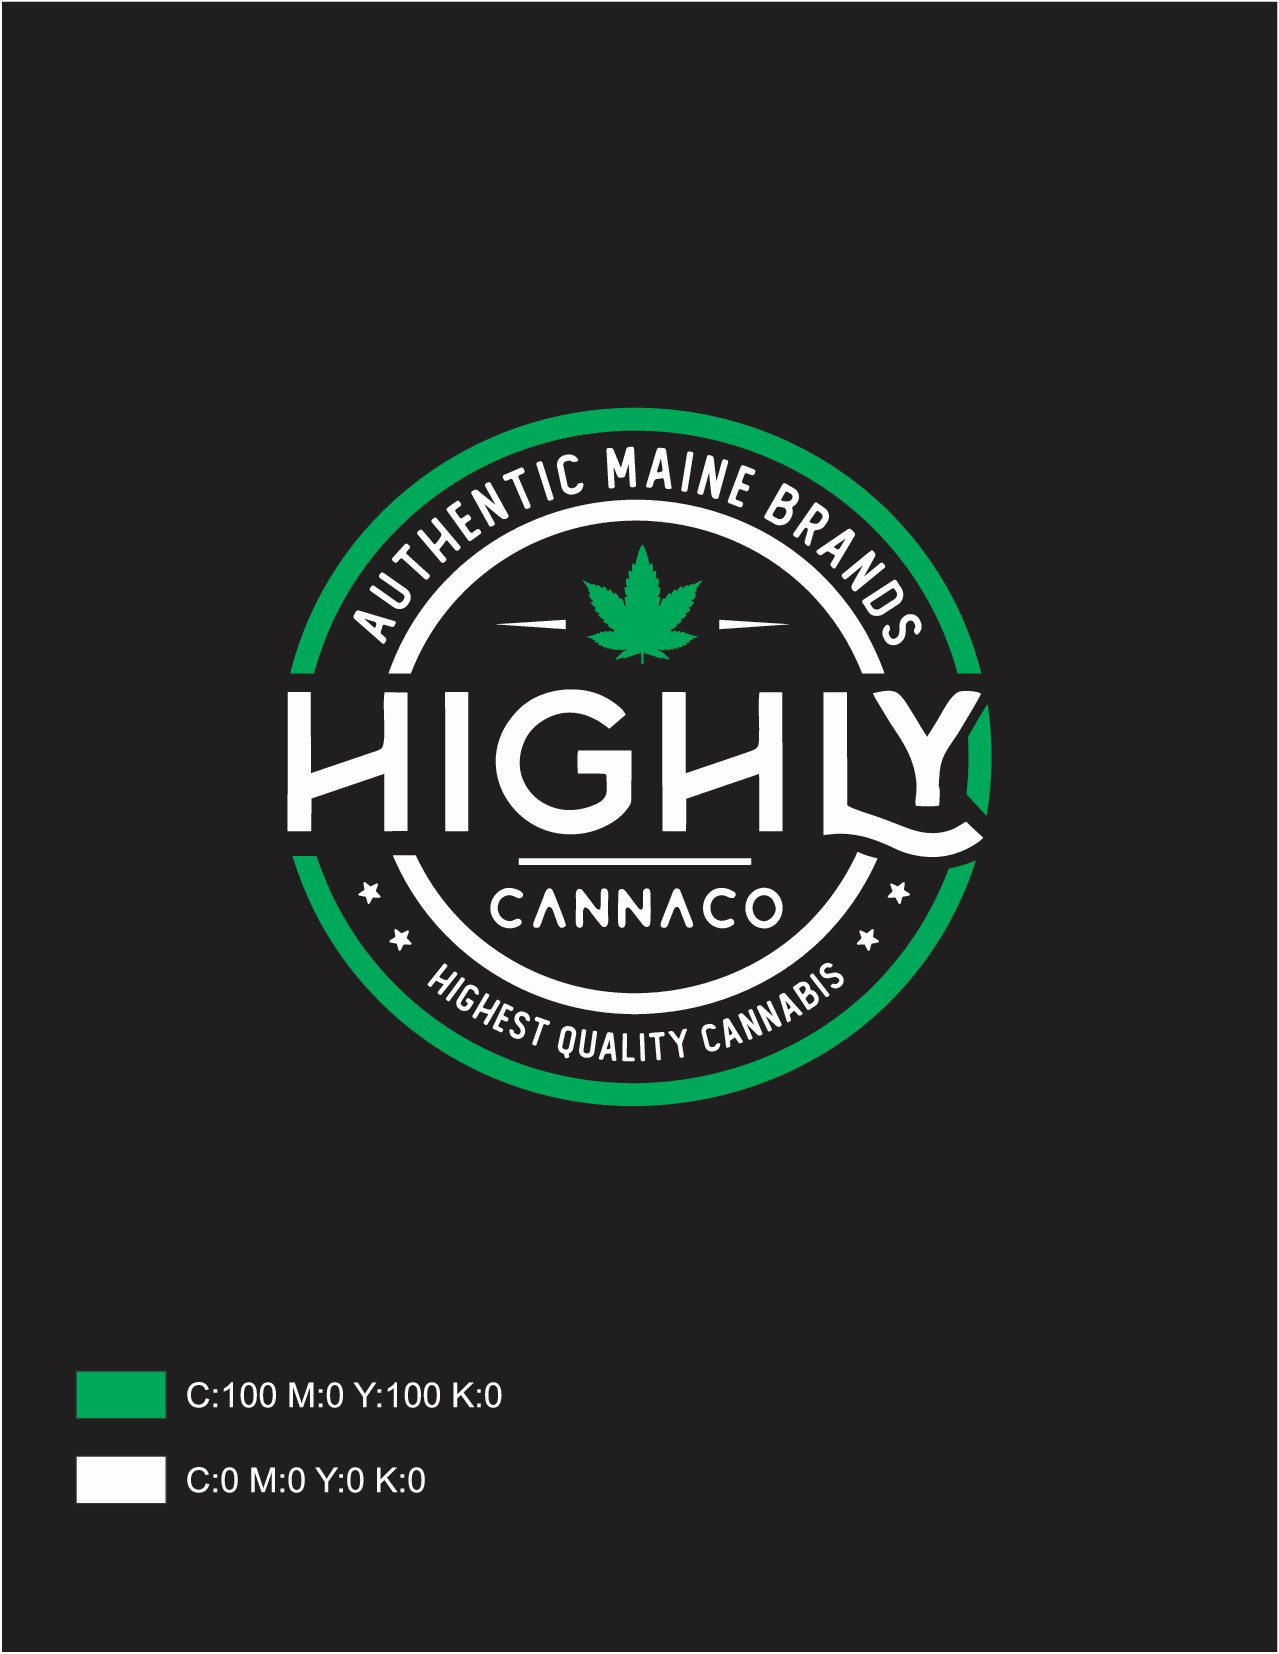 Cannabis Apparel and Swag